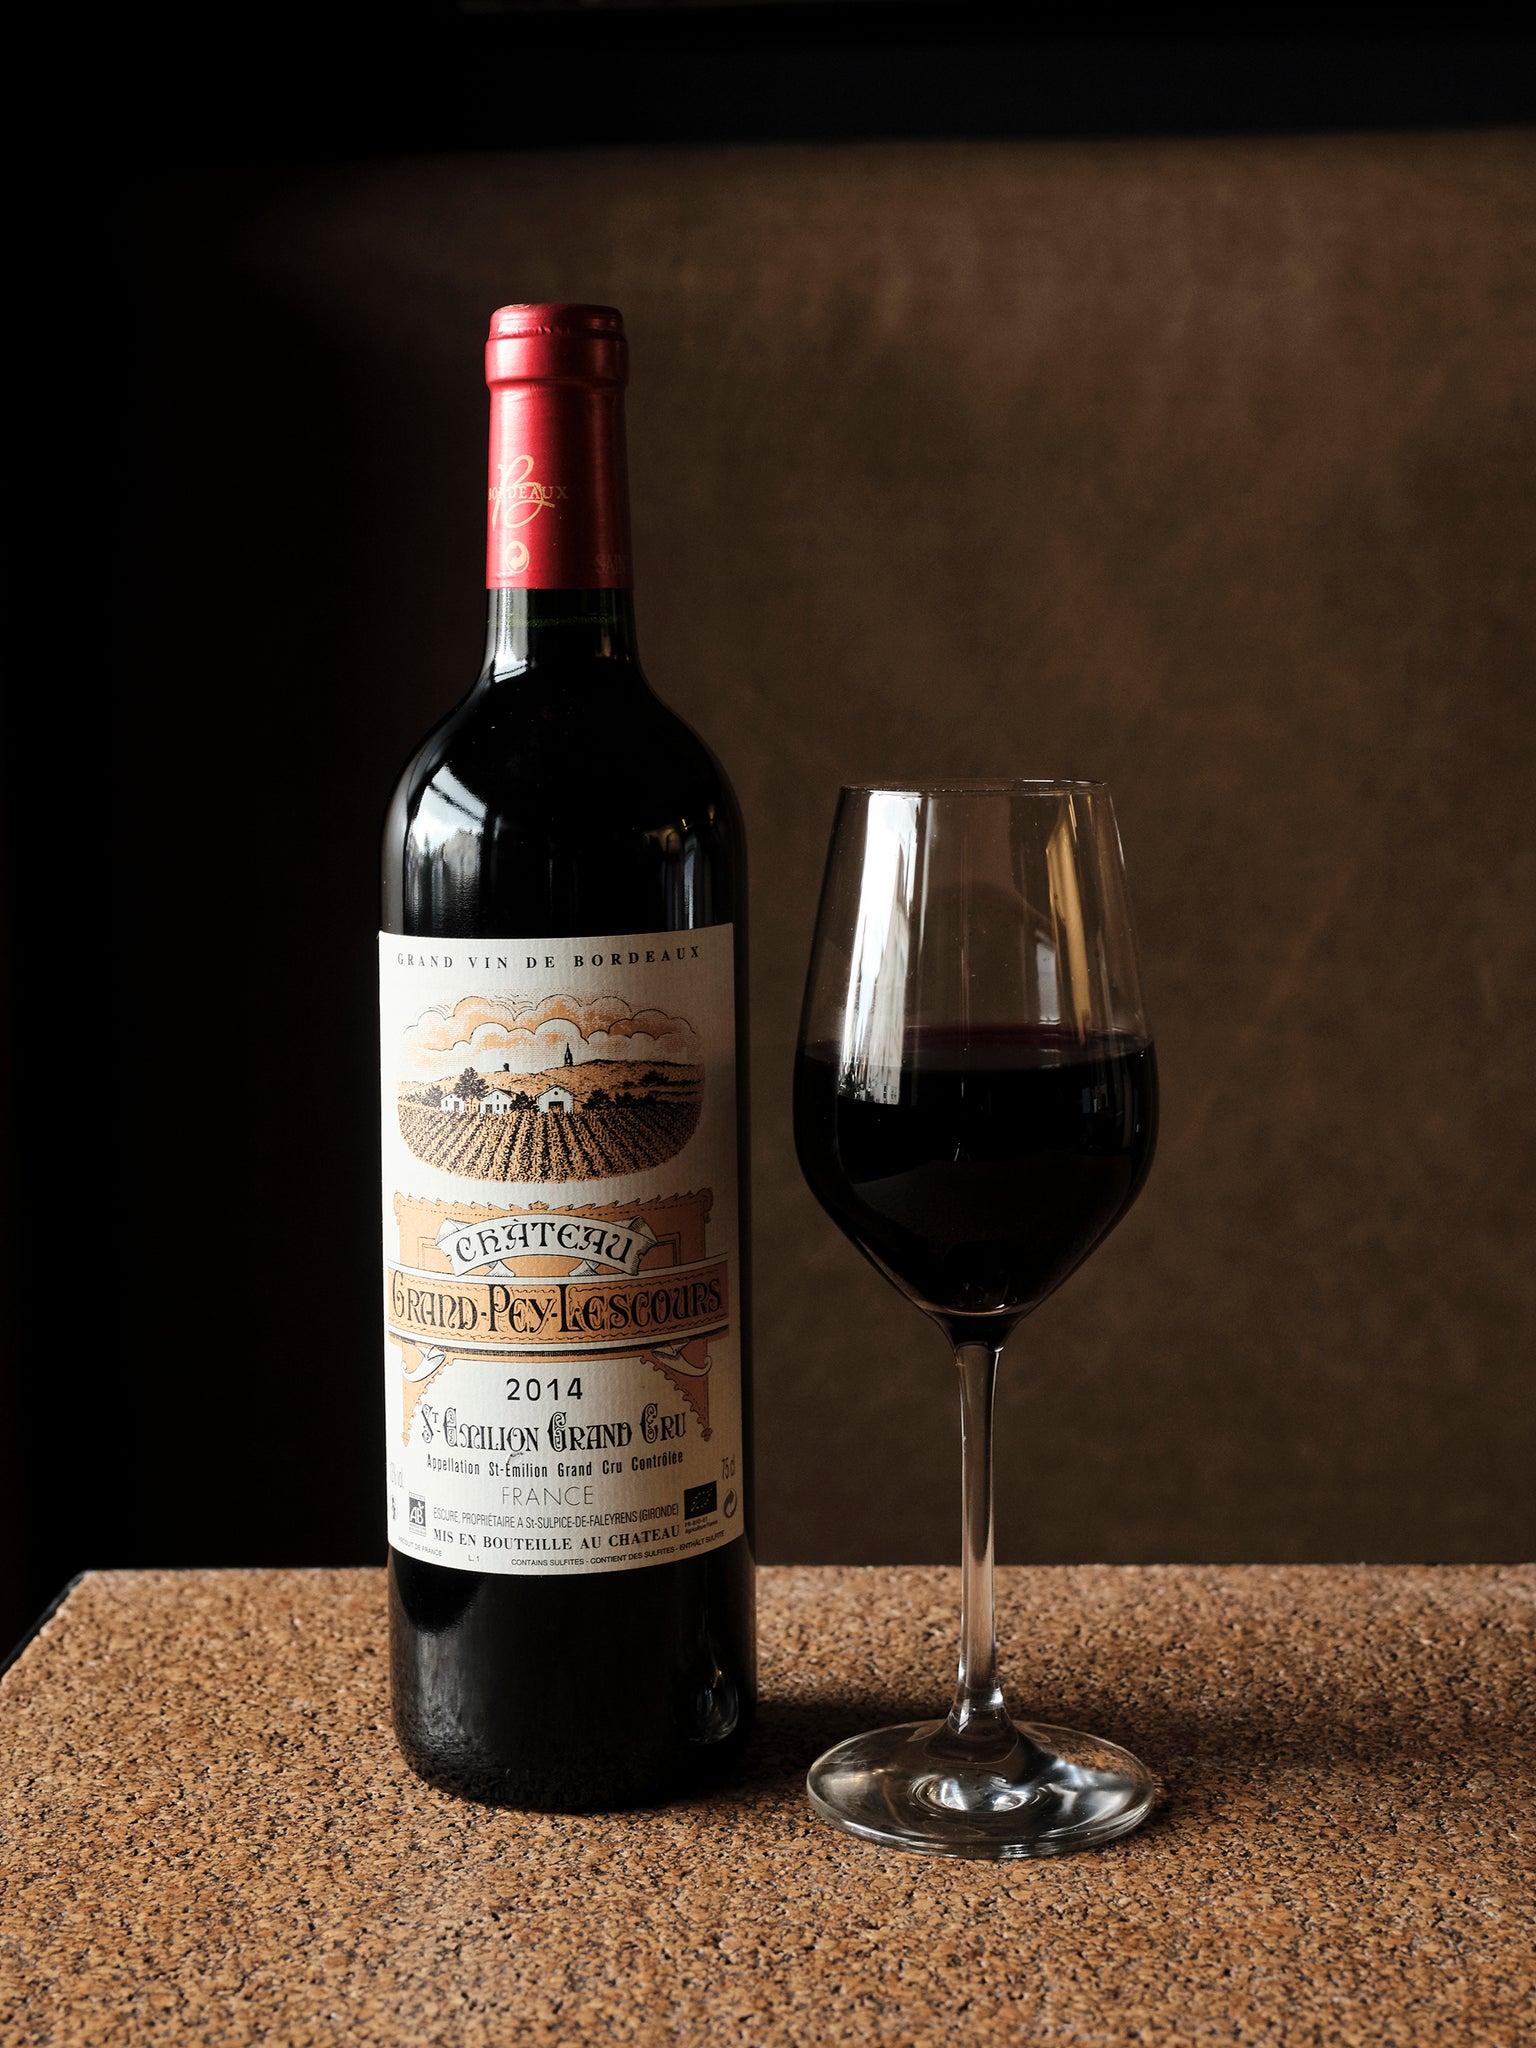 Chateau Grand Pey Lescours, St Emillion Grand Cru, Bordeaux, 2014